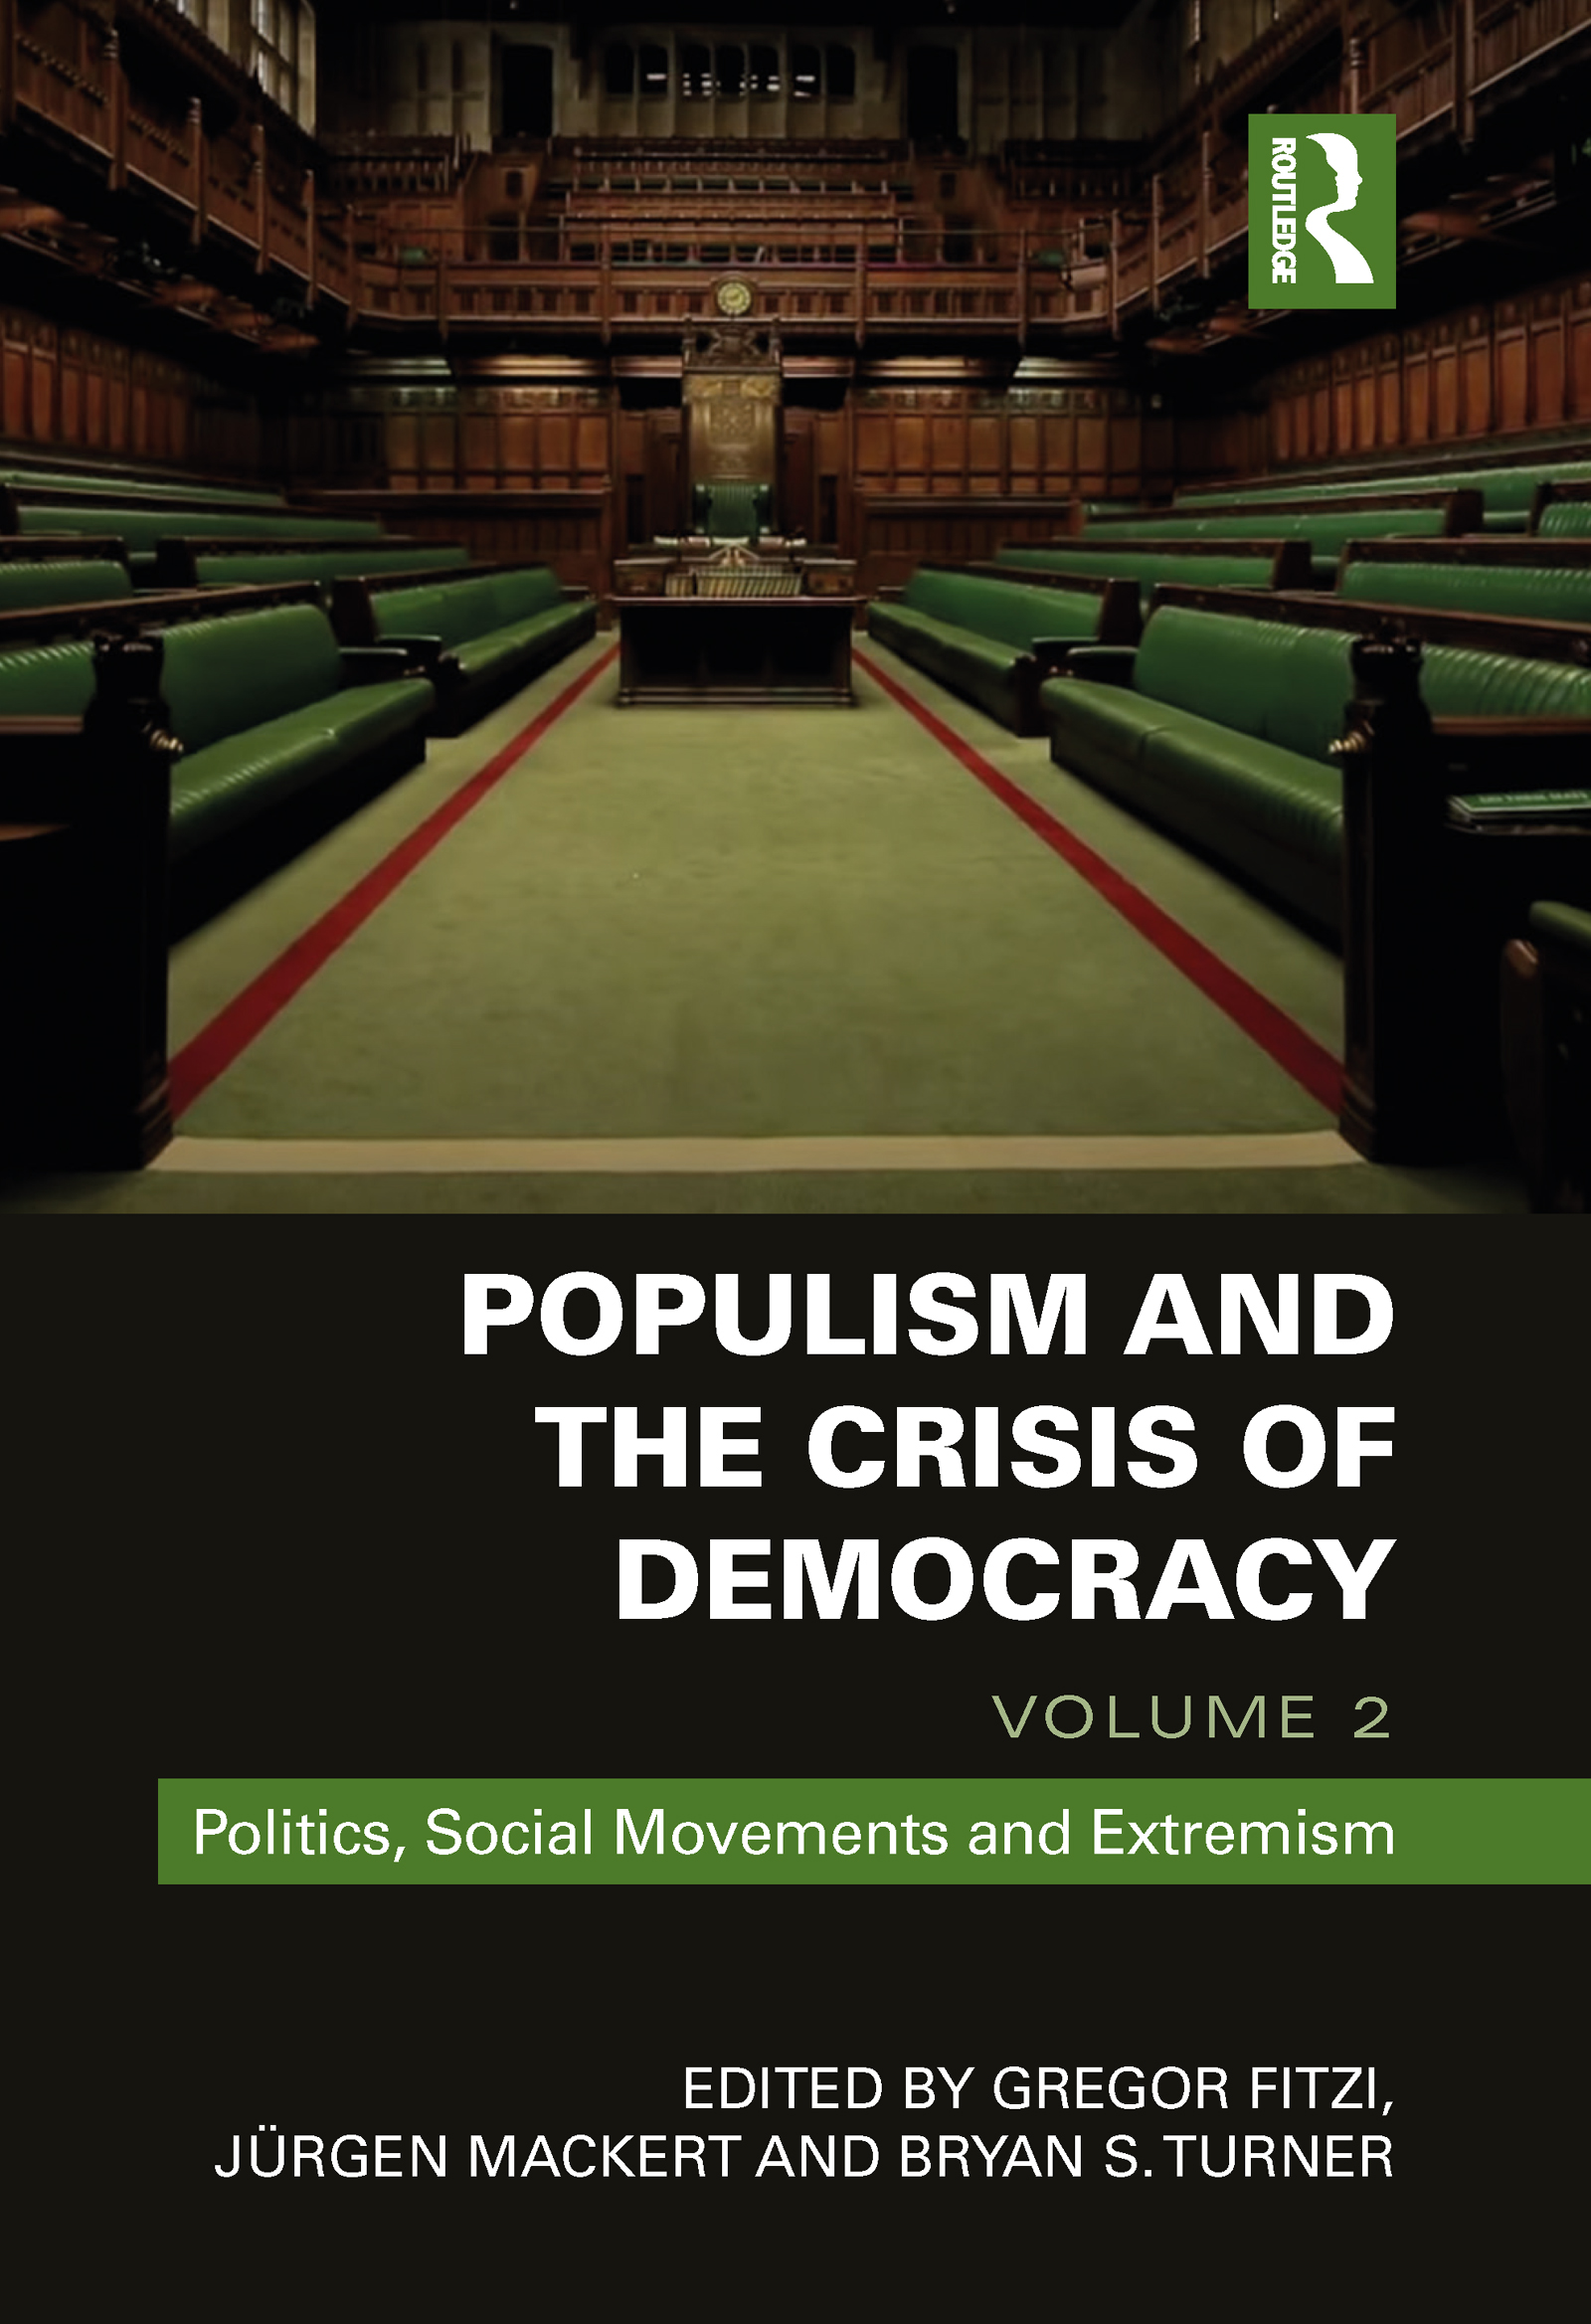 Populism and the Crisis of Democracy: Volume 2: Politics, Social Movements and Extremism book cover